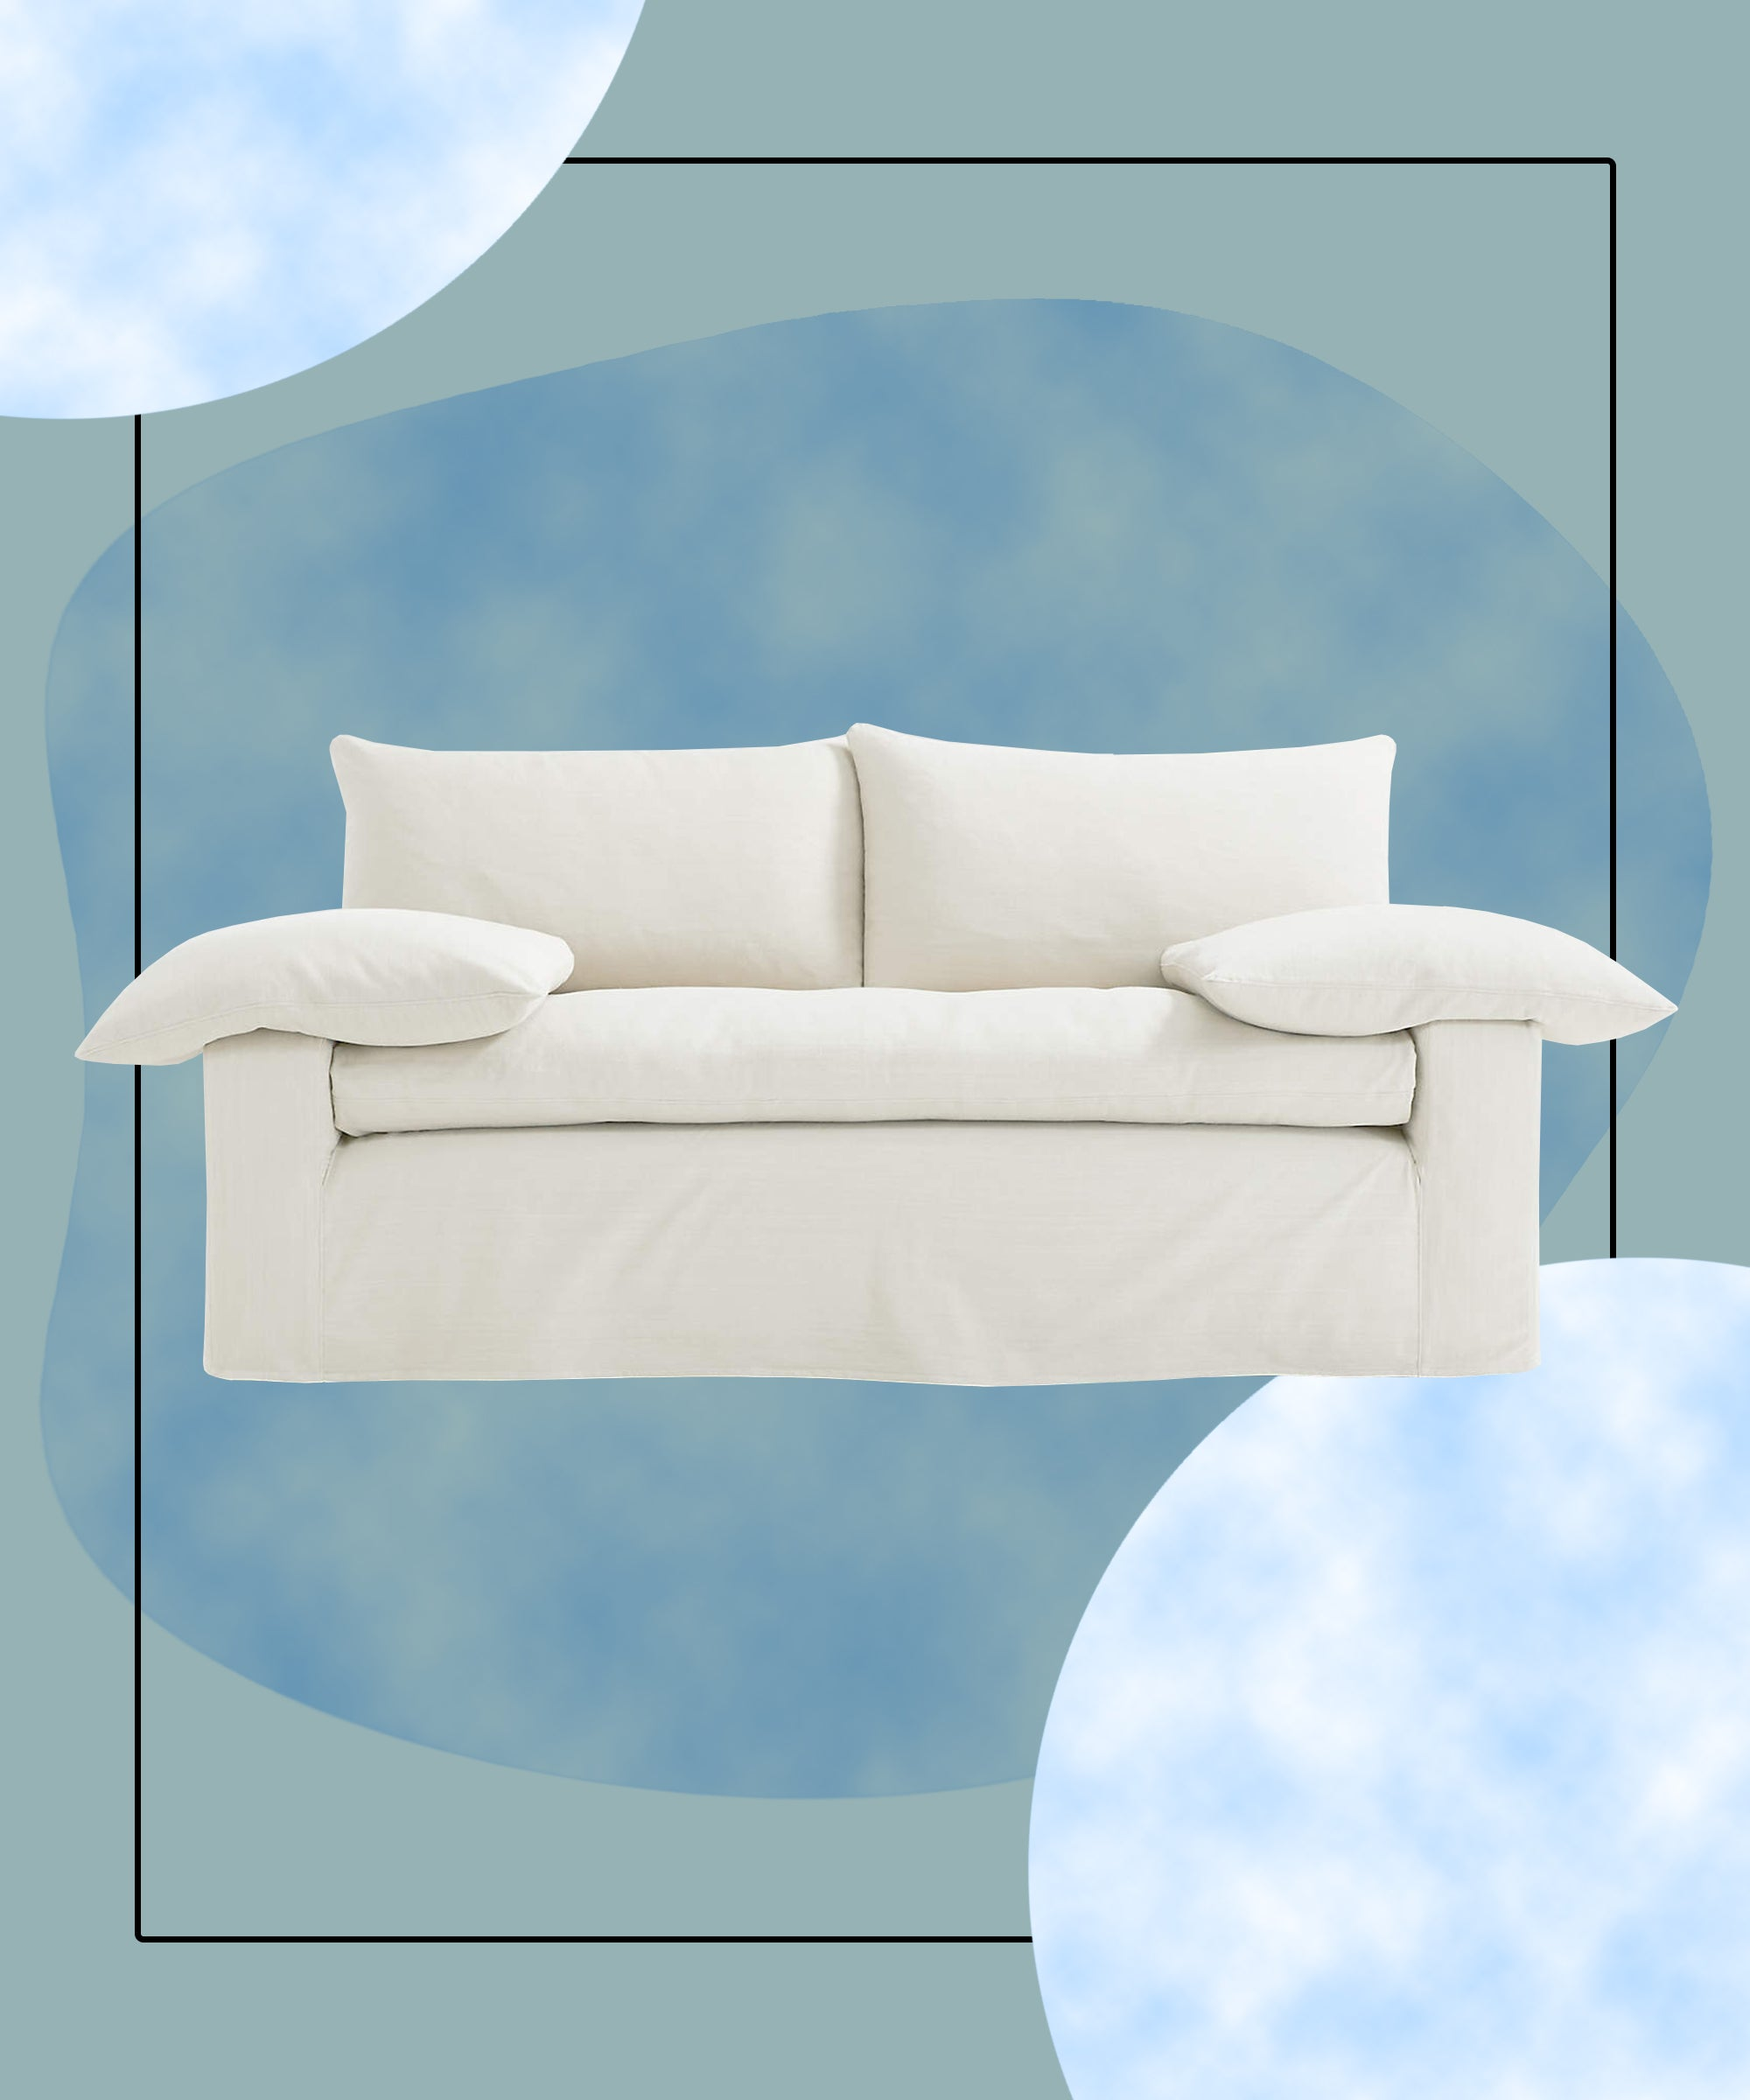 Cloud Couch Overstuffed Furniture Trend 2021